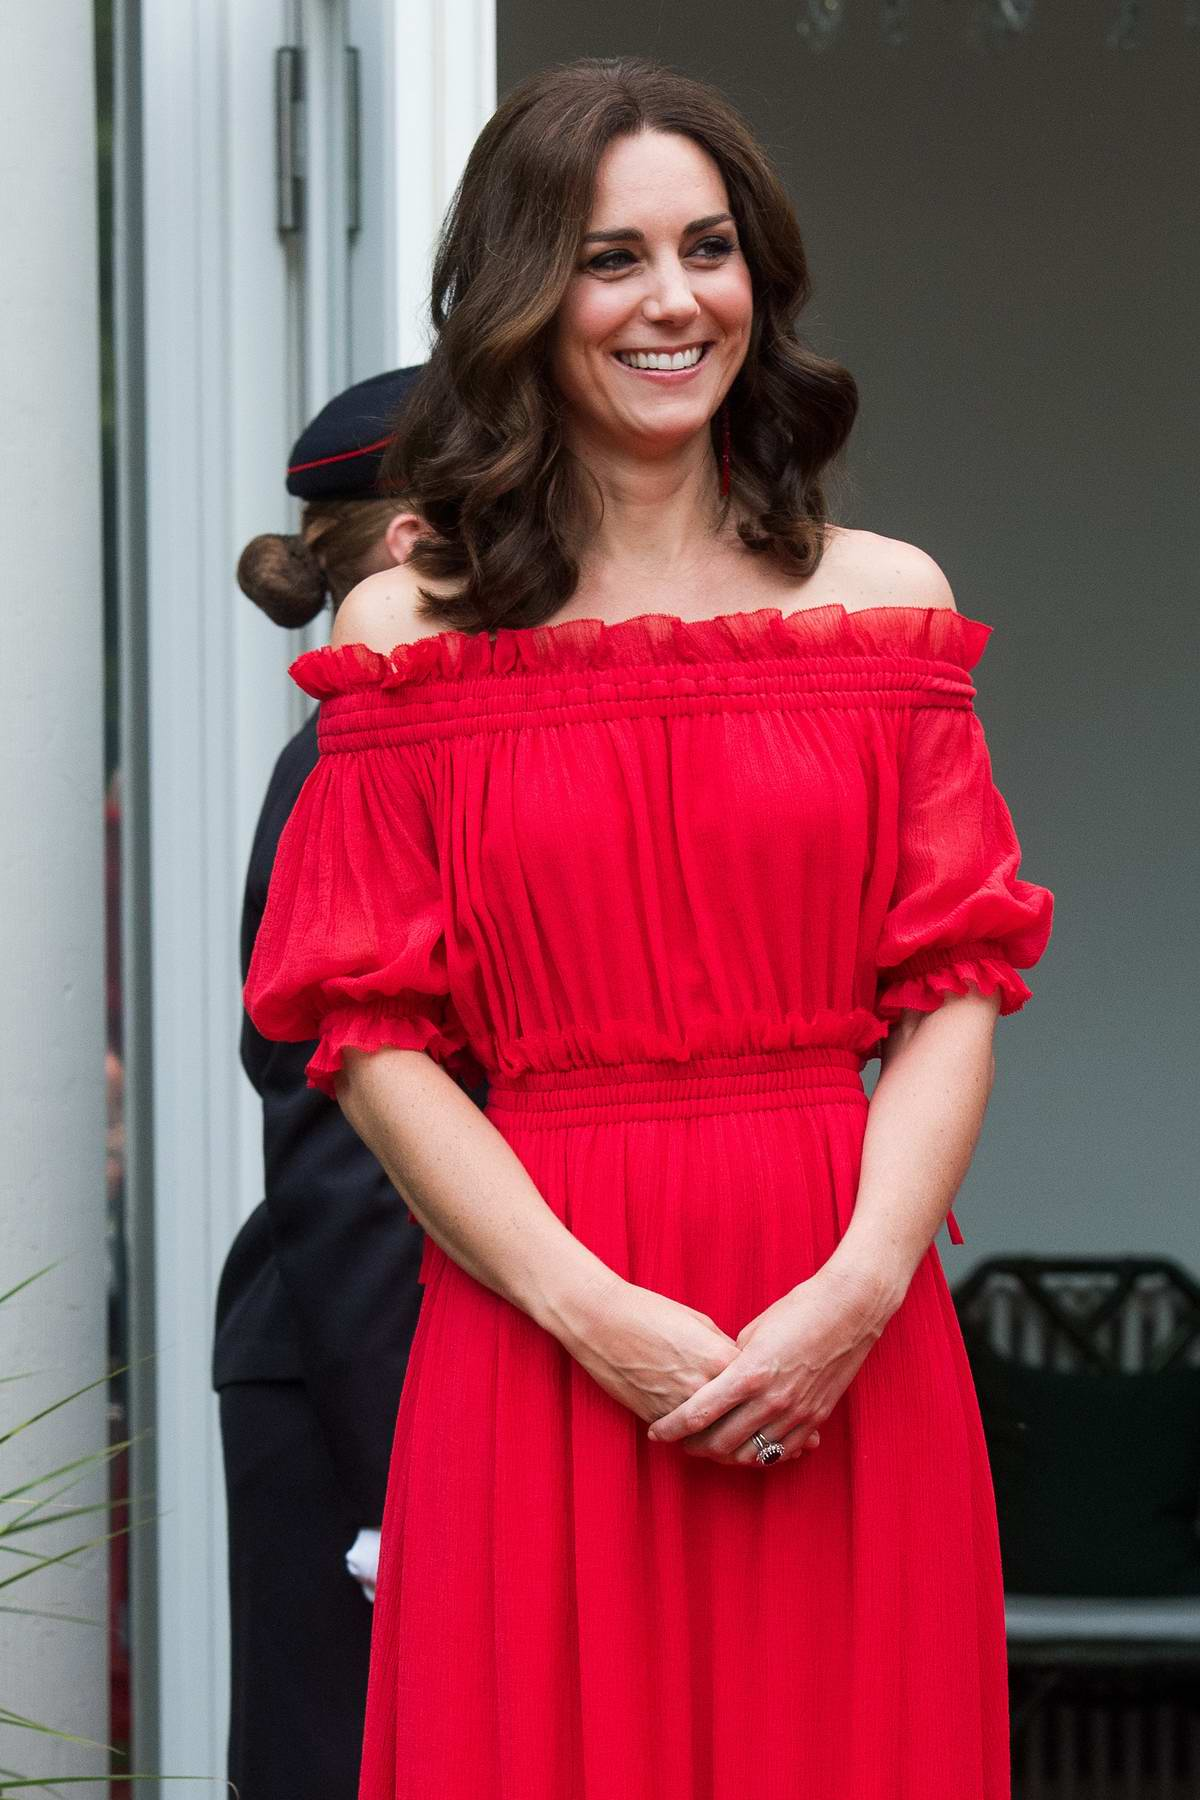 Kate Middleton attends the Queen's Birthday Garden Party in Berlin, Germany